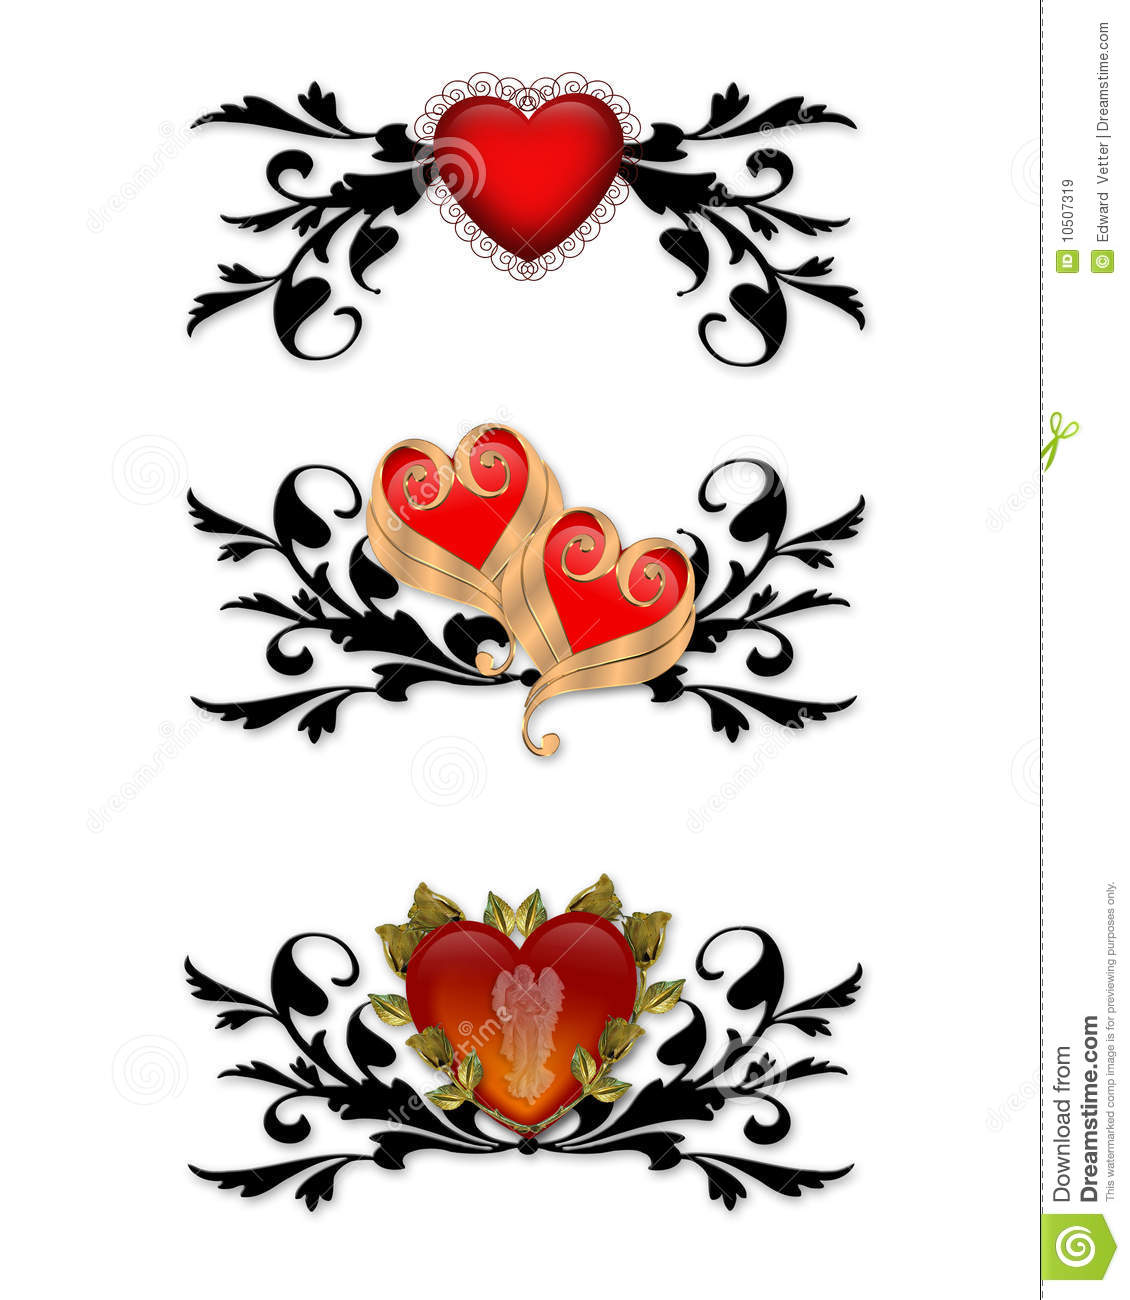 Red Heart Tribal Design Elements Royalty Free Stock Images